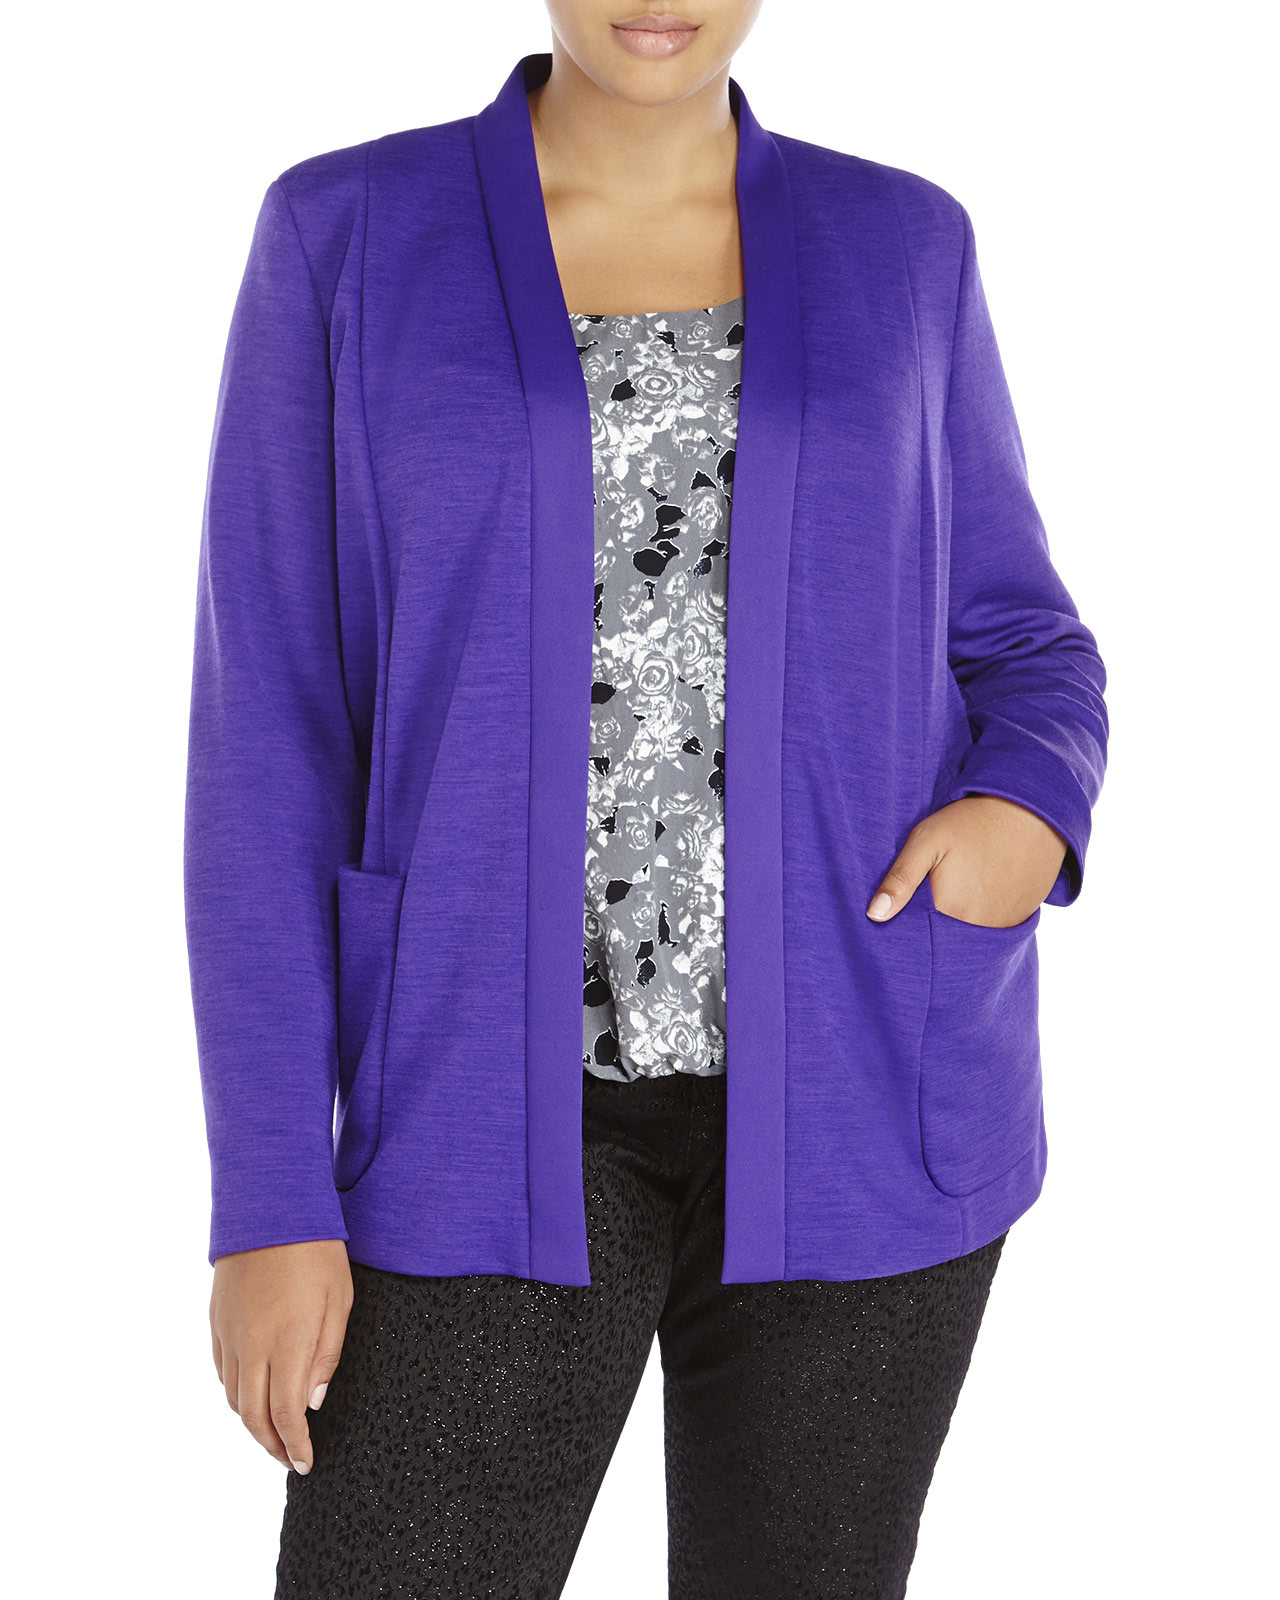 Marina rinaldi Plus Size Open Front Jacket in Purple